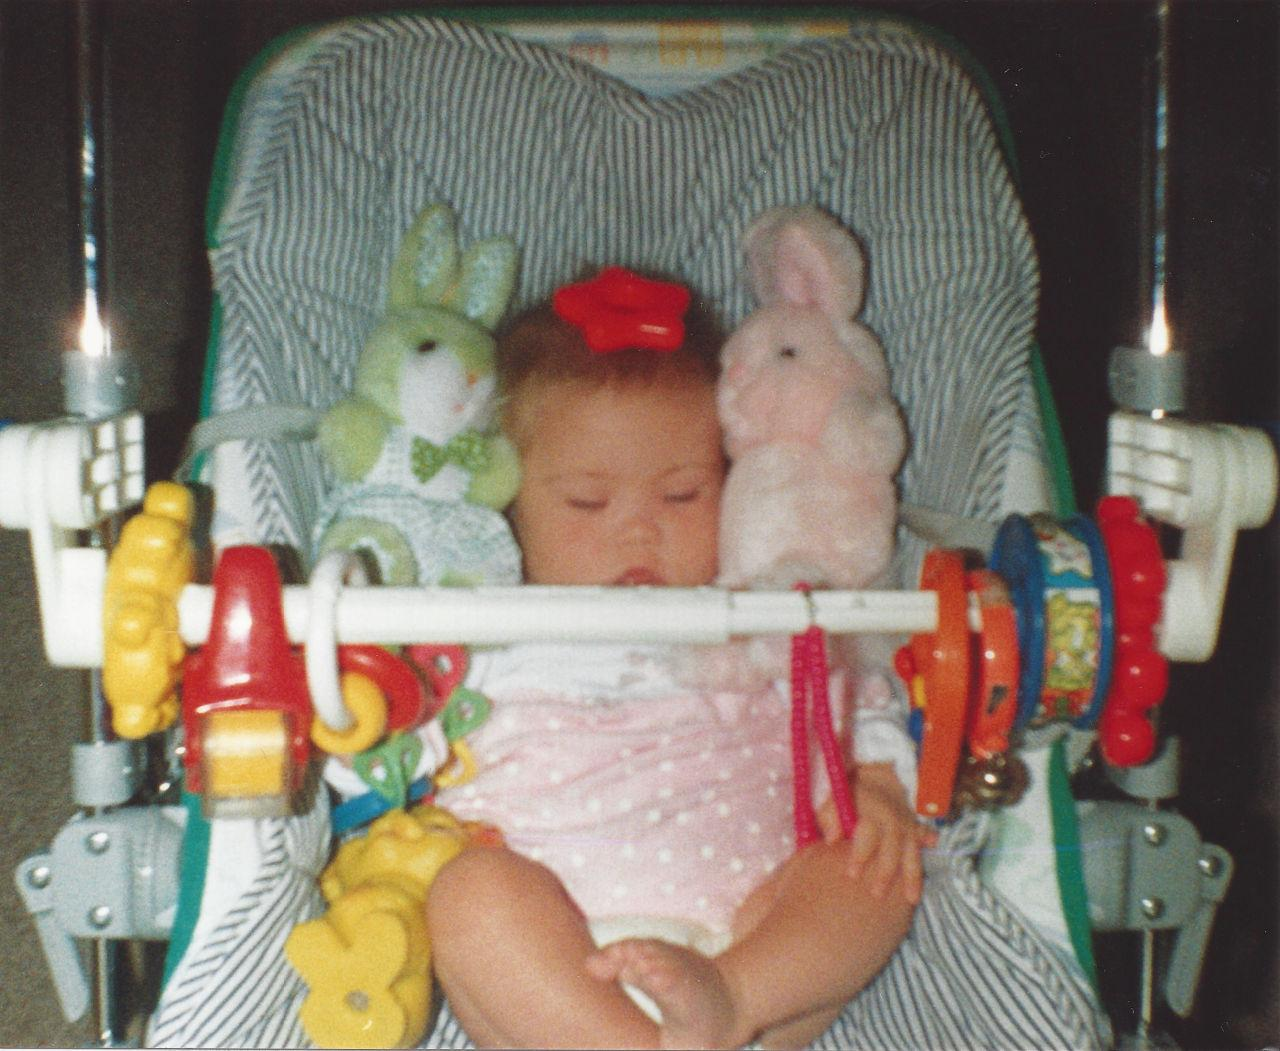 Megan as a baby with cuddly toys.